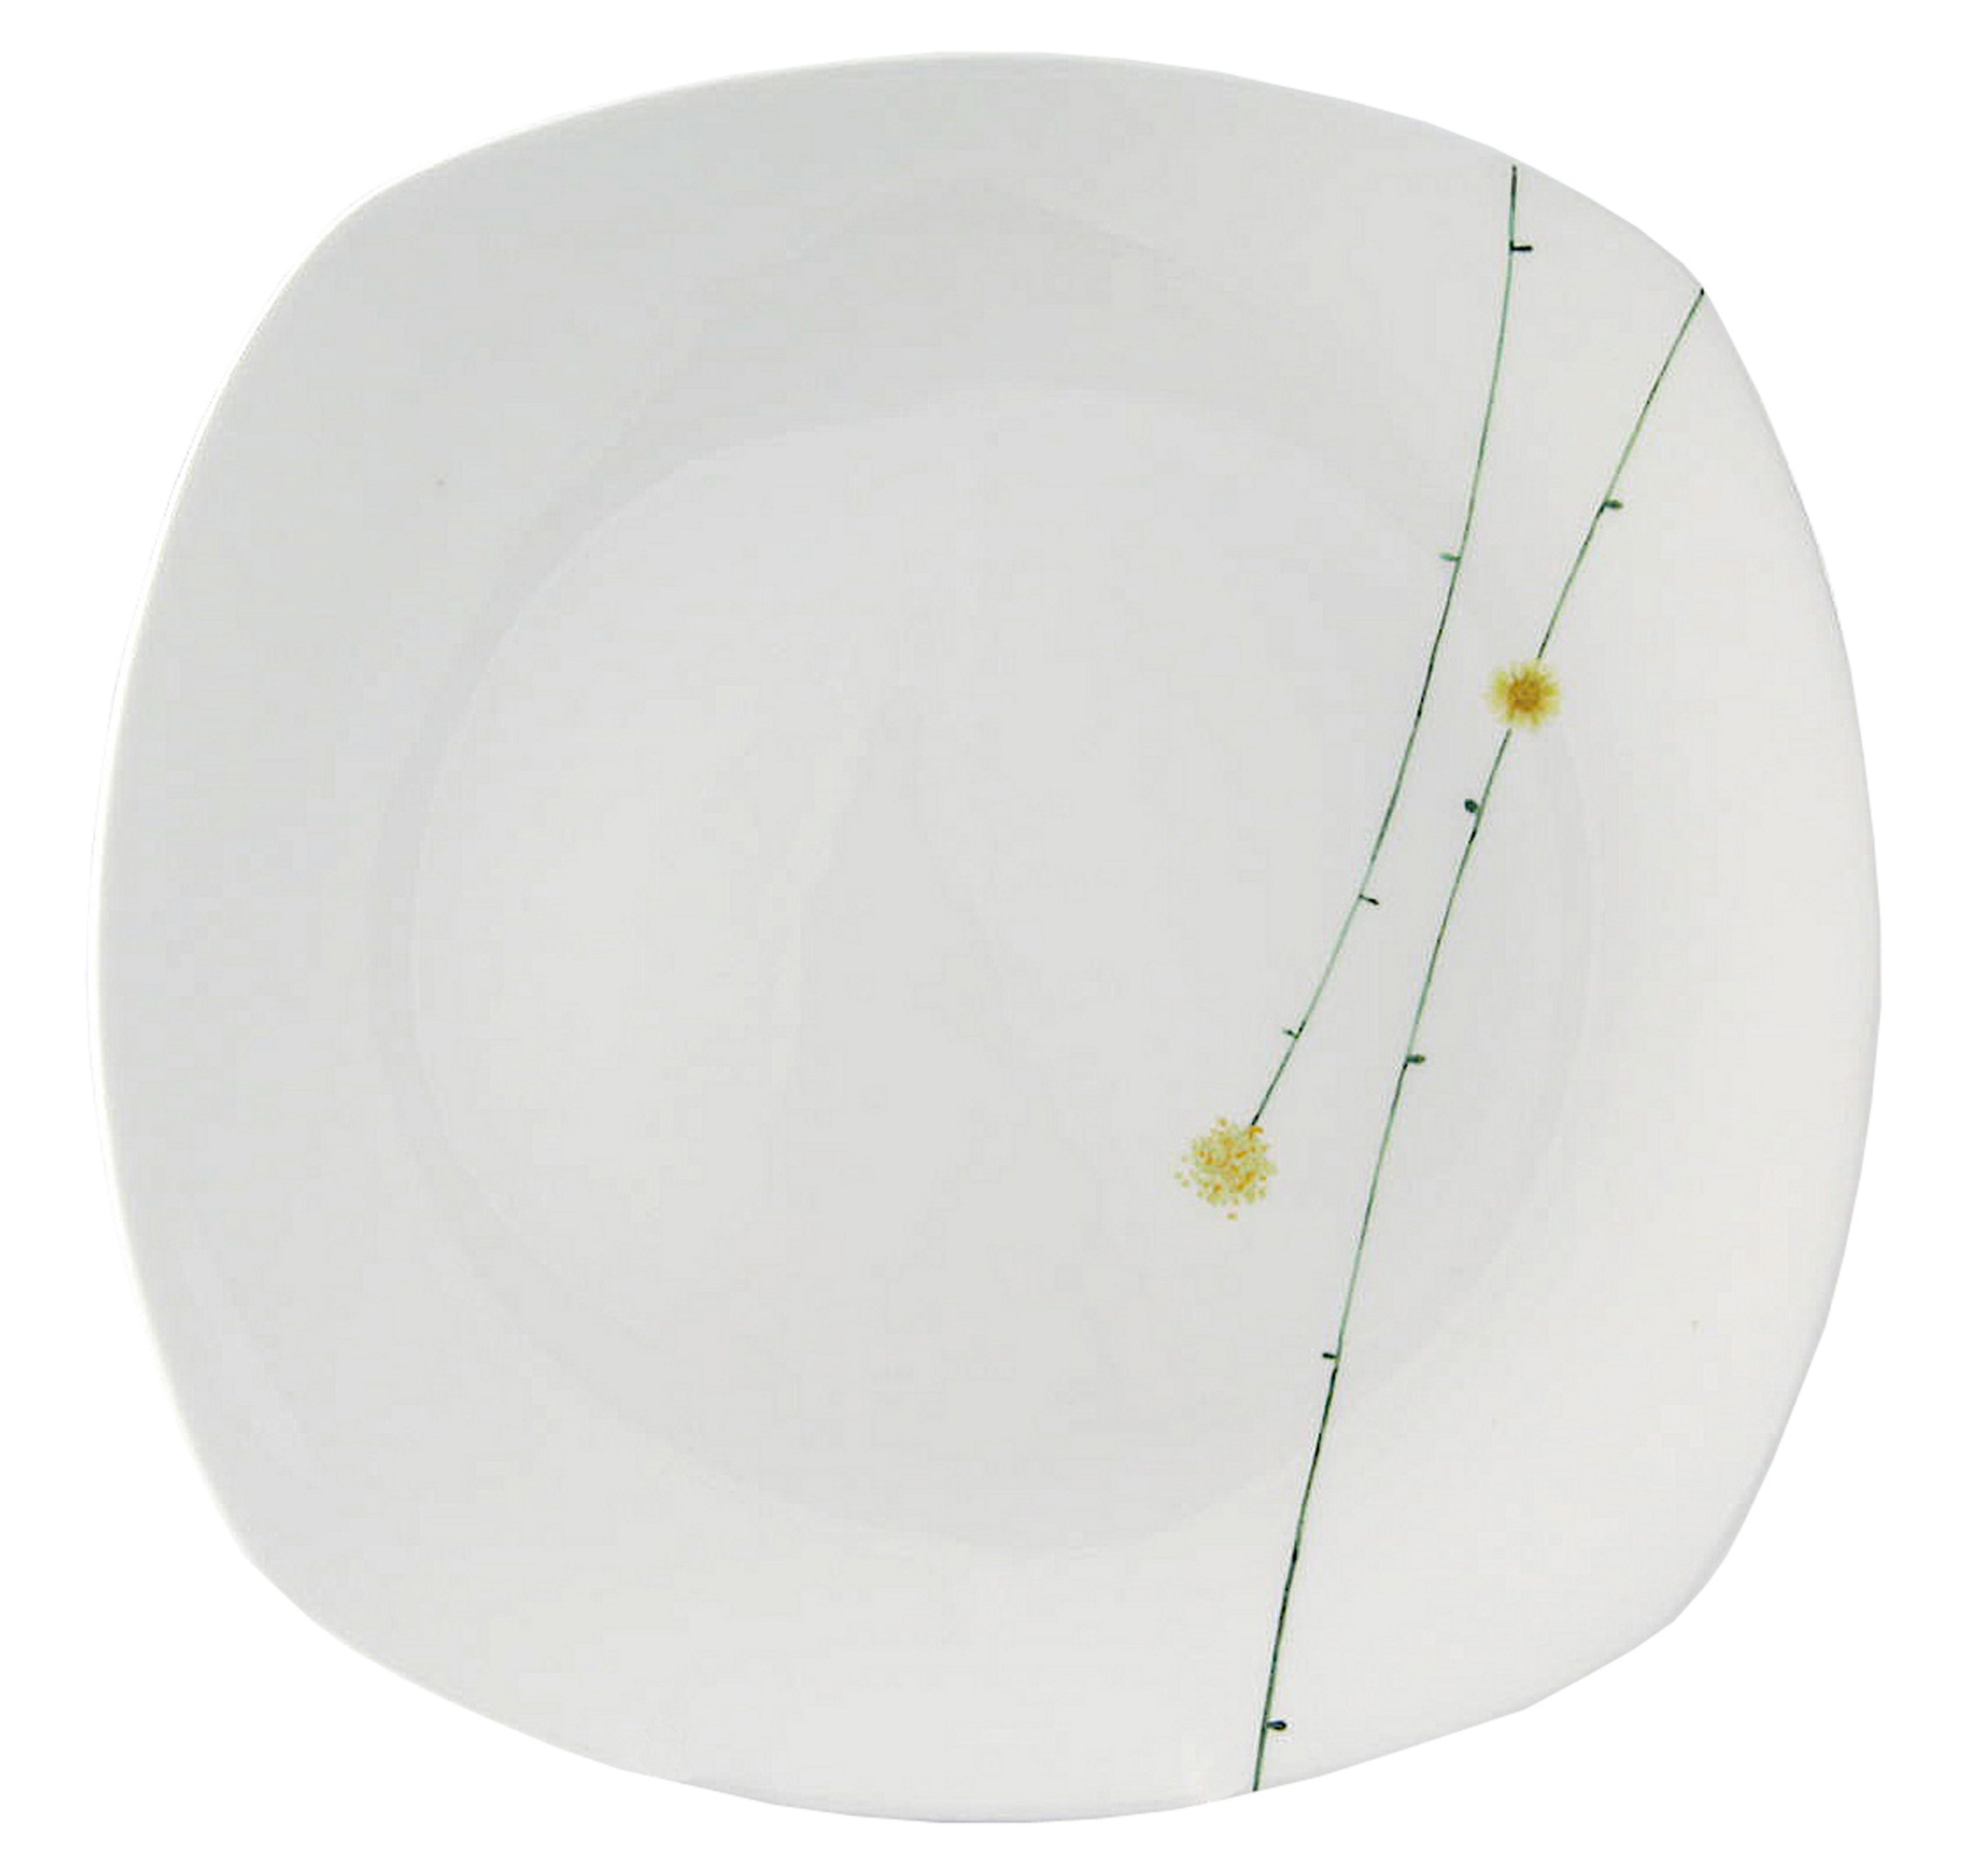 Daisy chain dinner plate